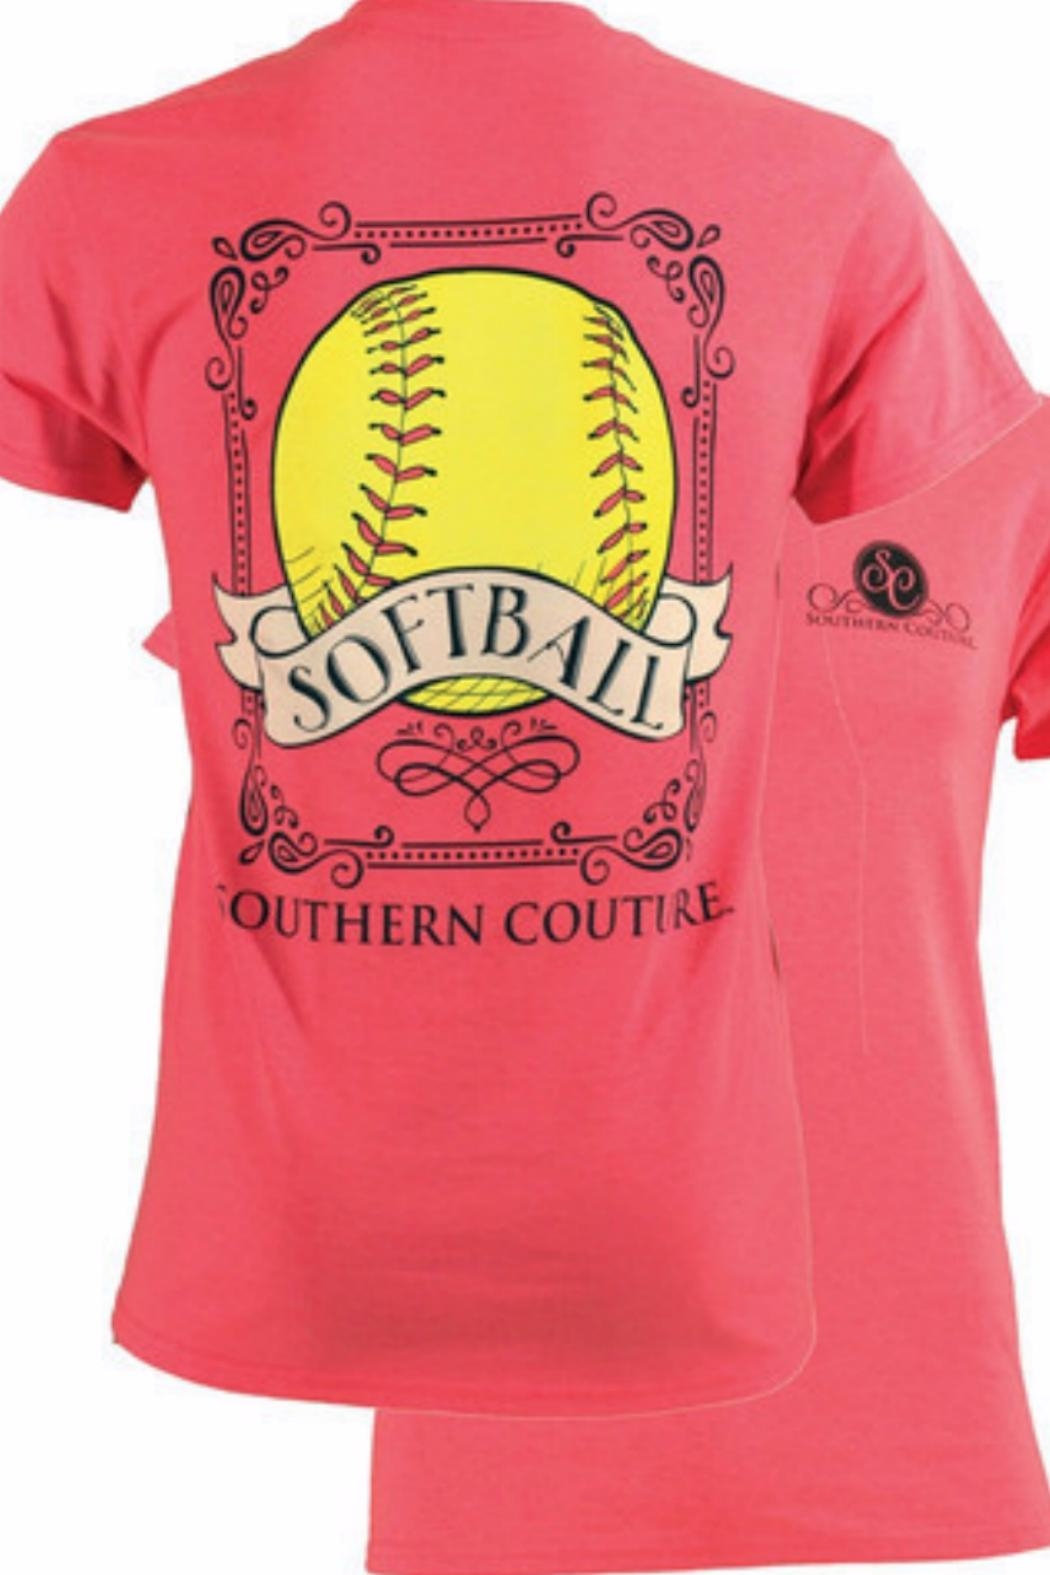 Southern Couture Southern Softball T - Main Image